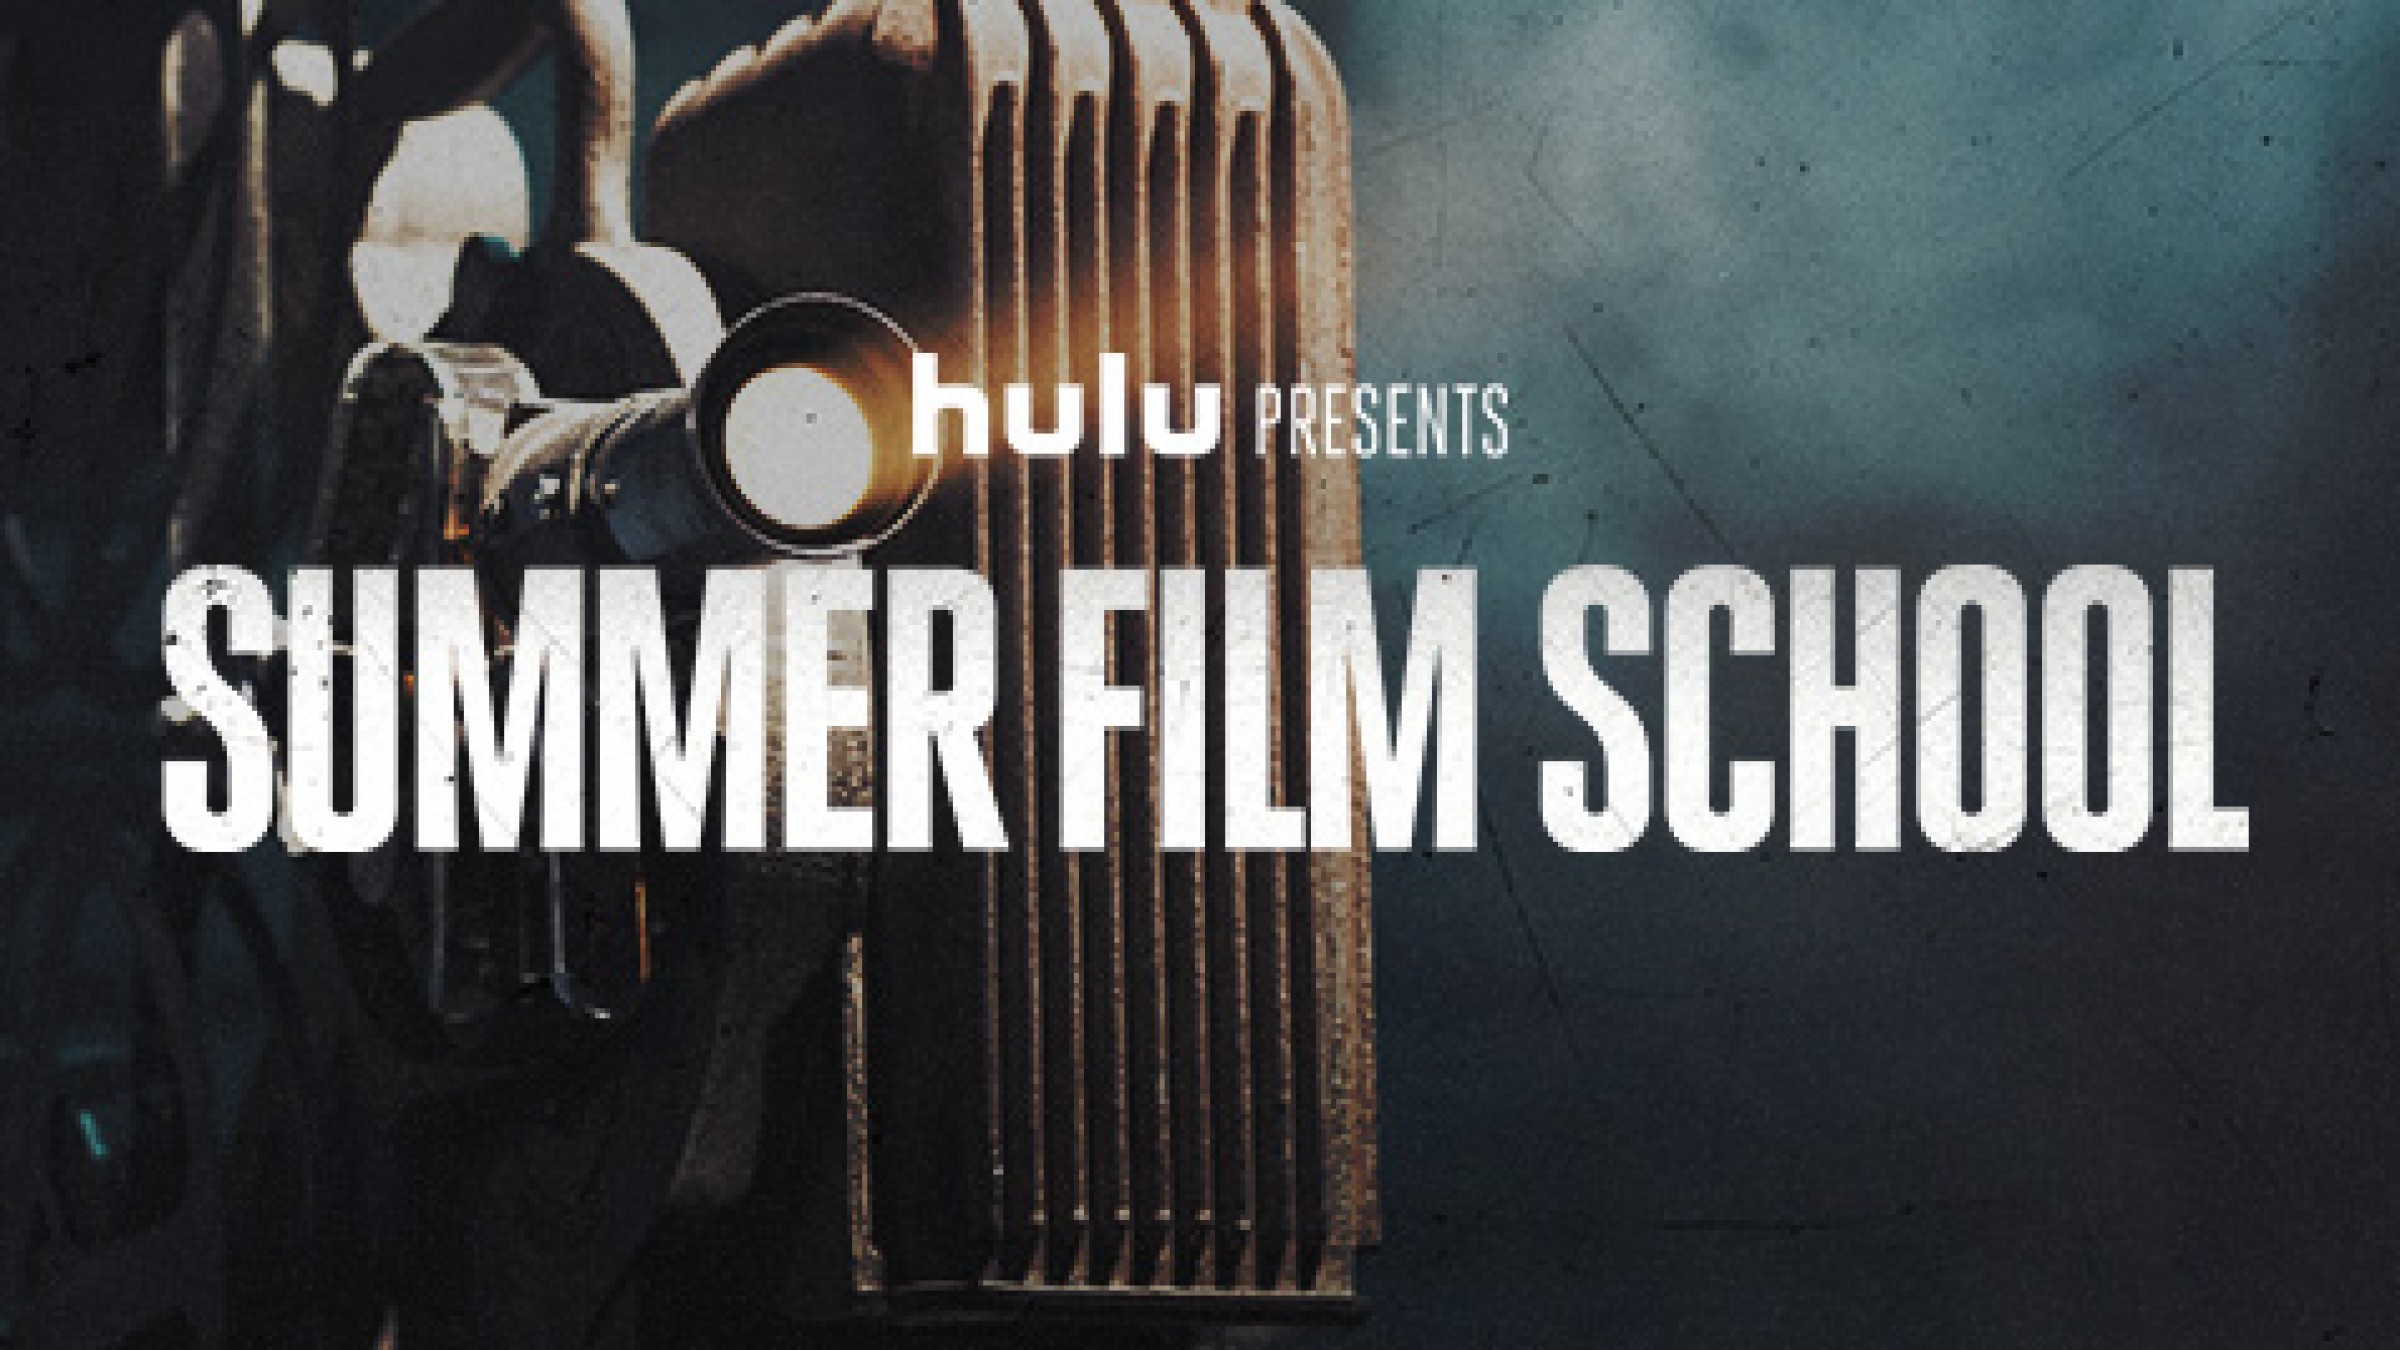 Hulu's Summer Film School is Now in Session